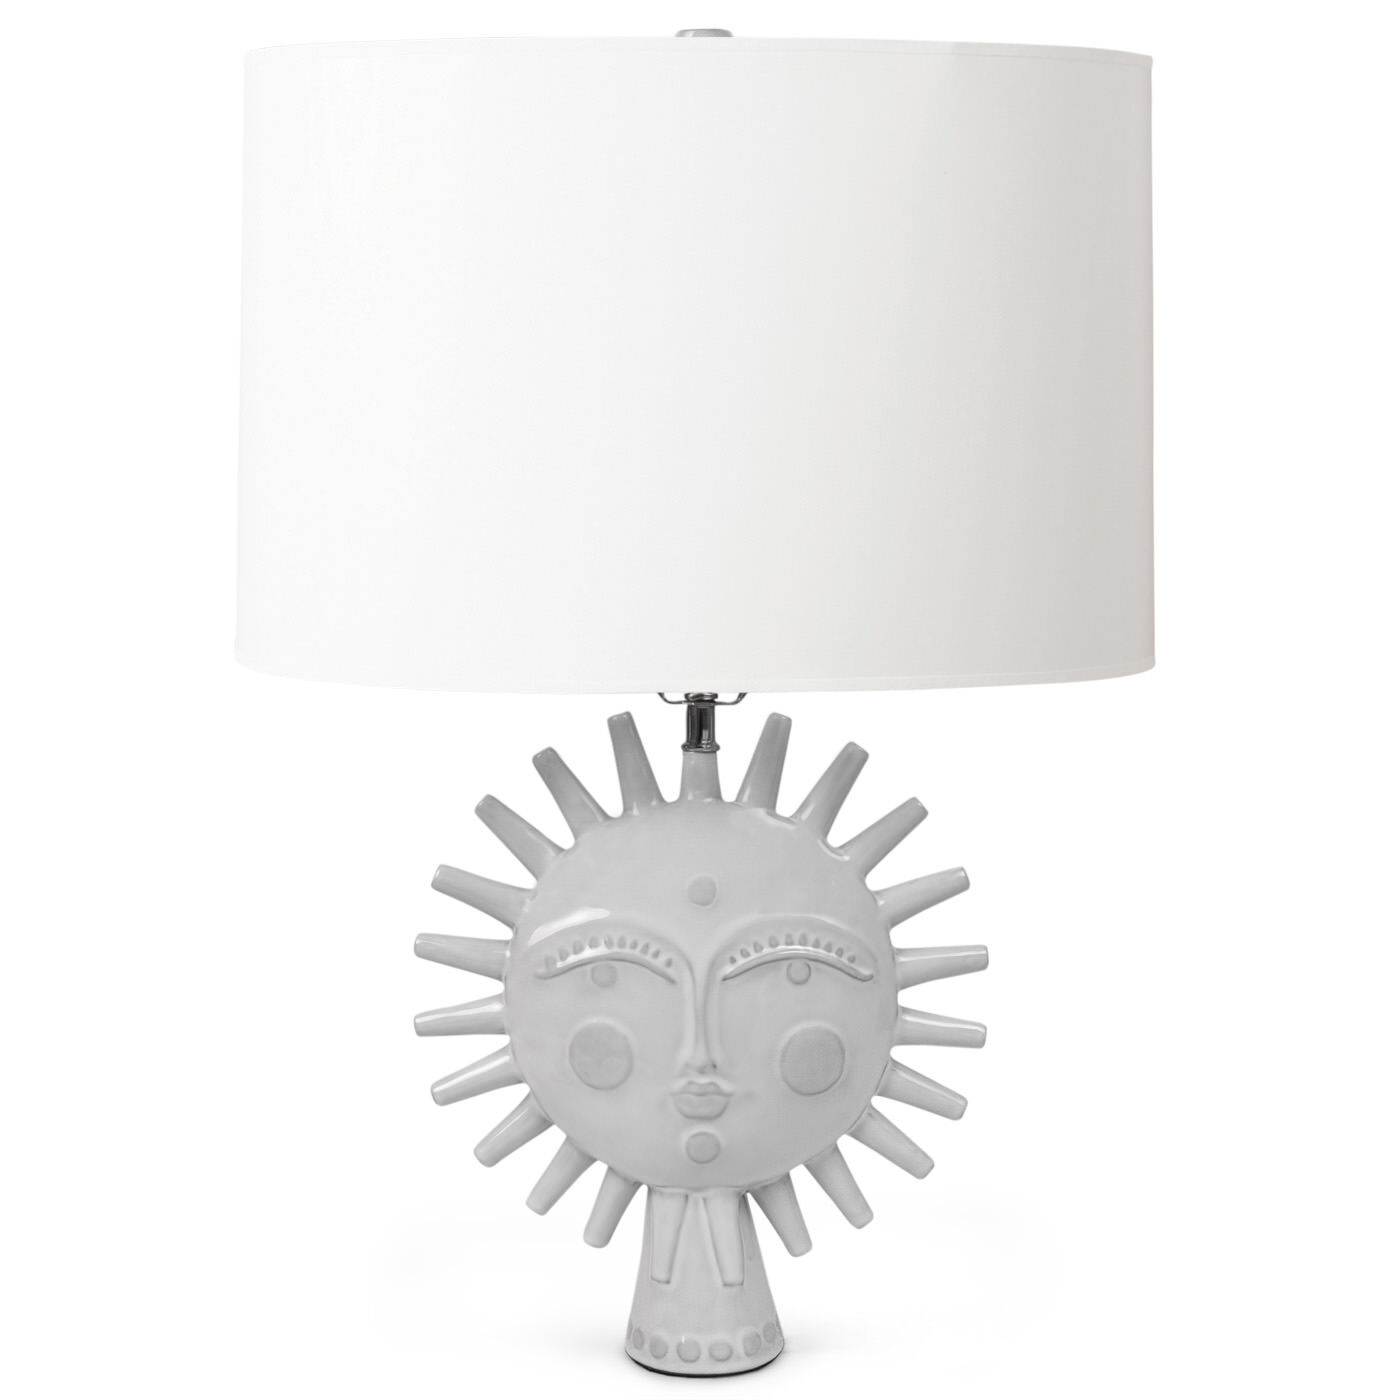 Holding Category For Inventory   Utopia Sun Table Lamp